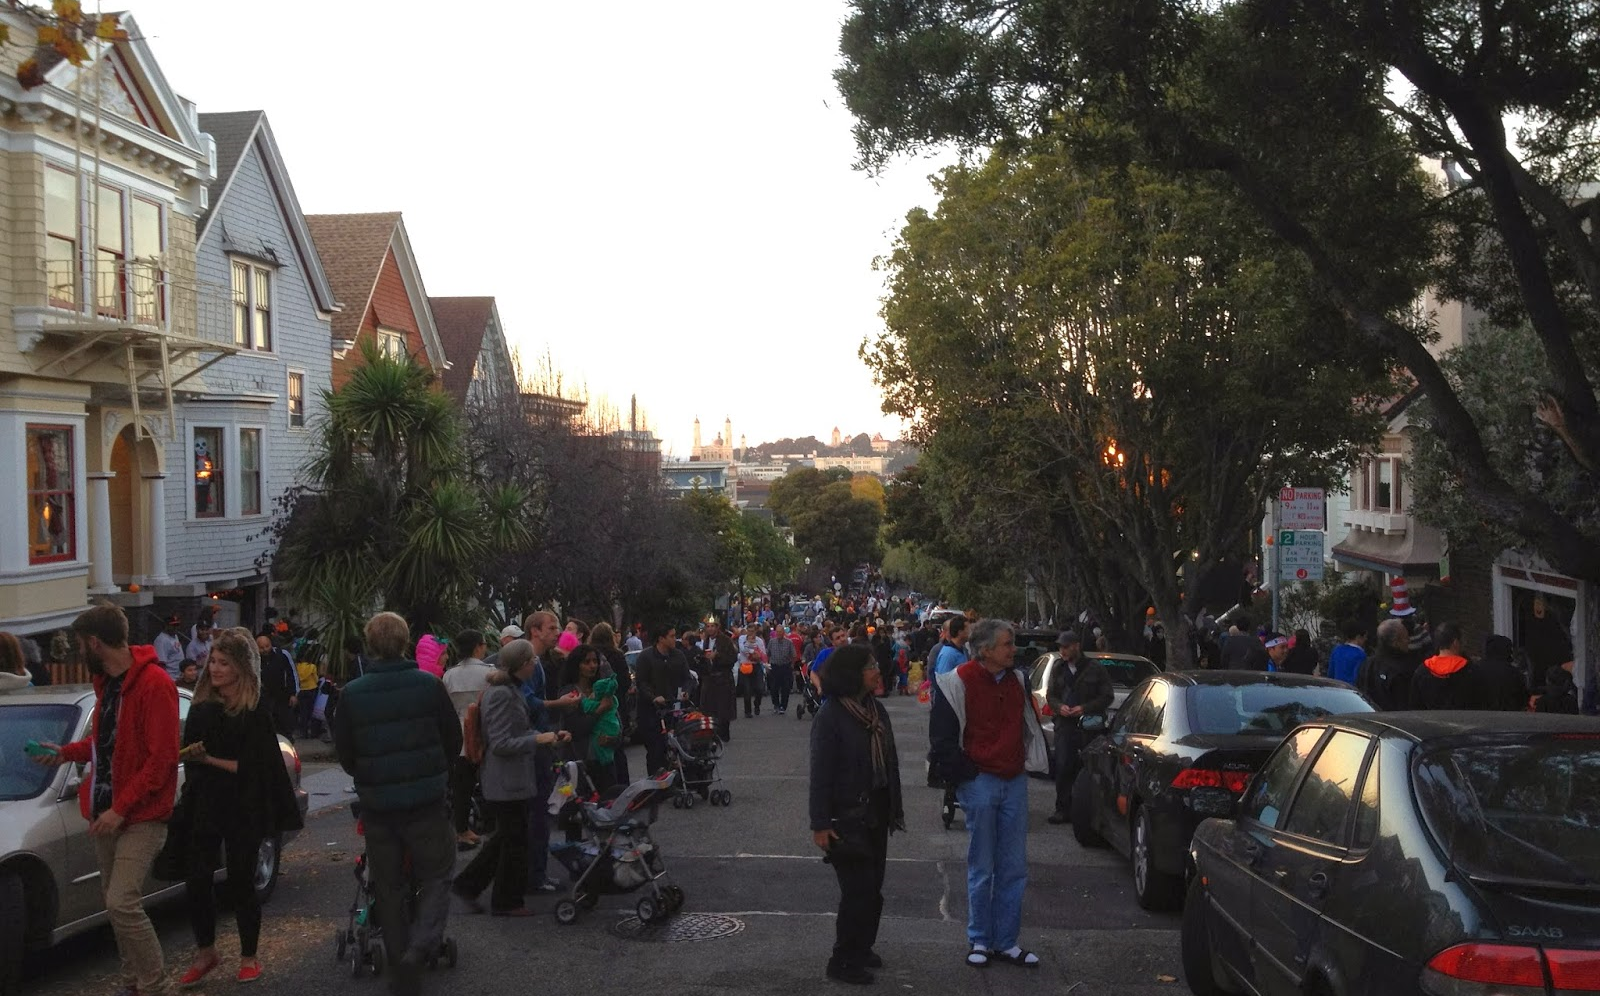 Halloween is a festive occasion every year on a strip of Belvedere Street between Parnassus and 17th Streets.